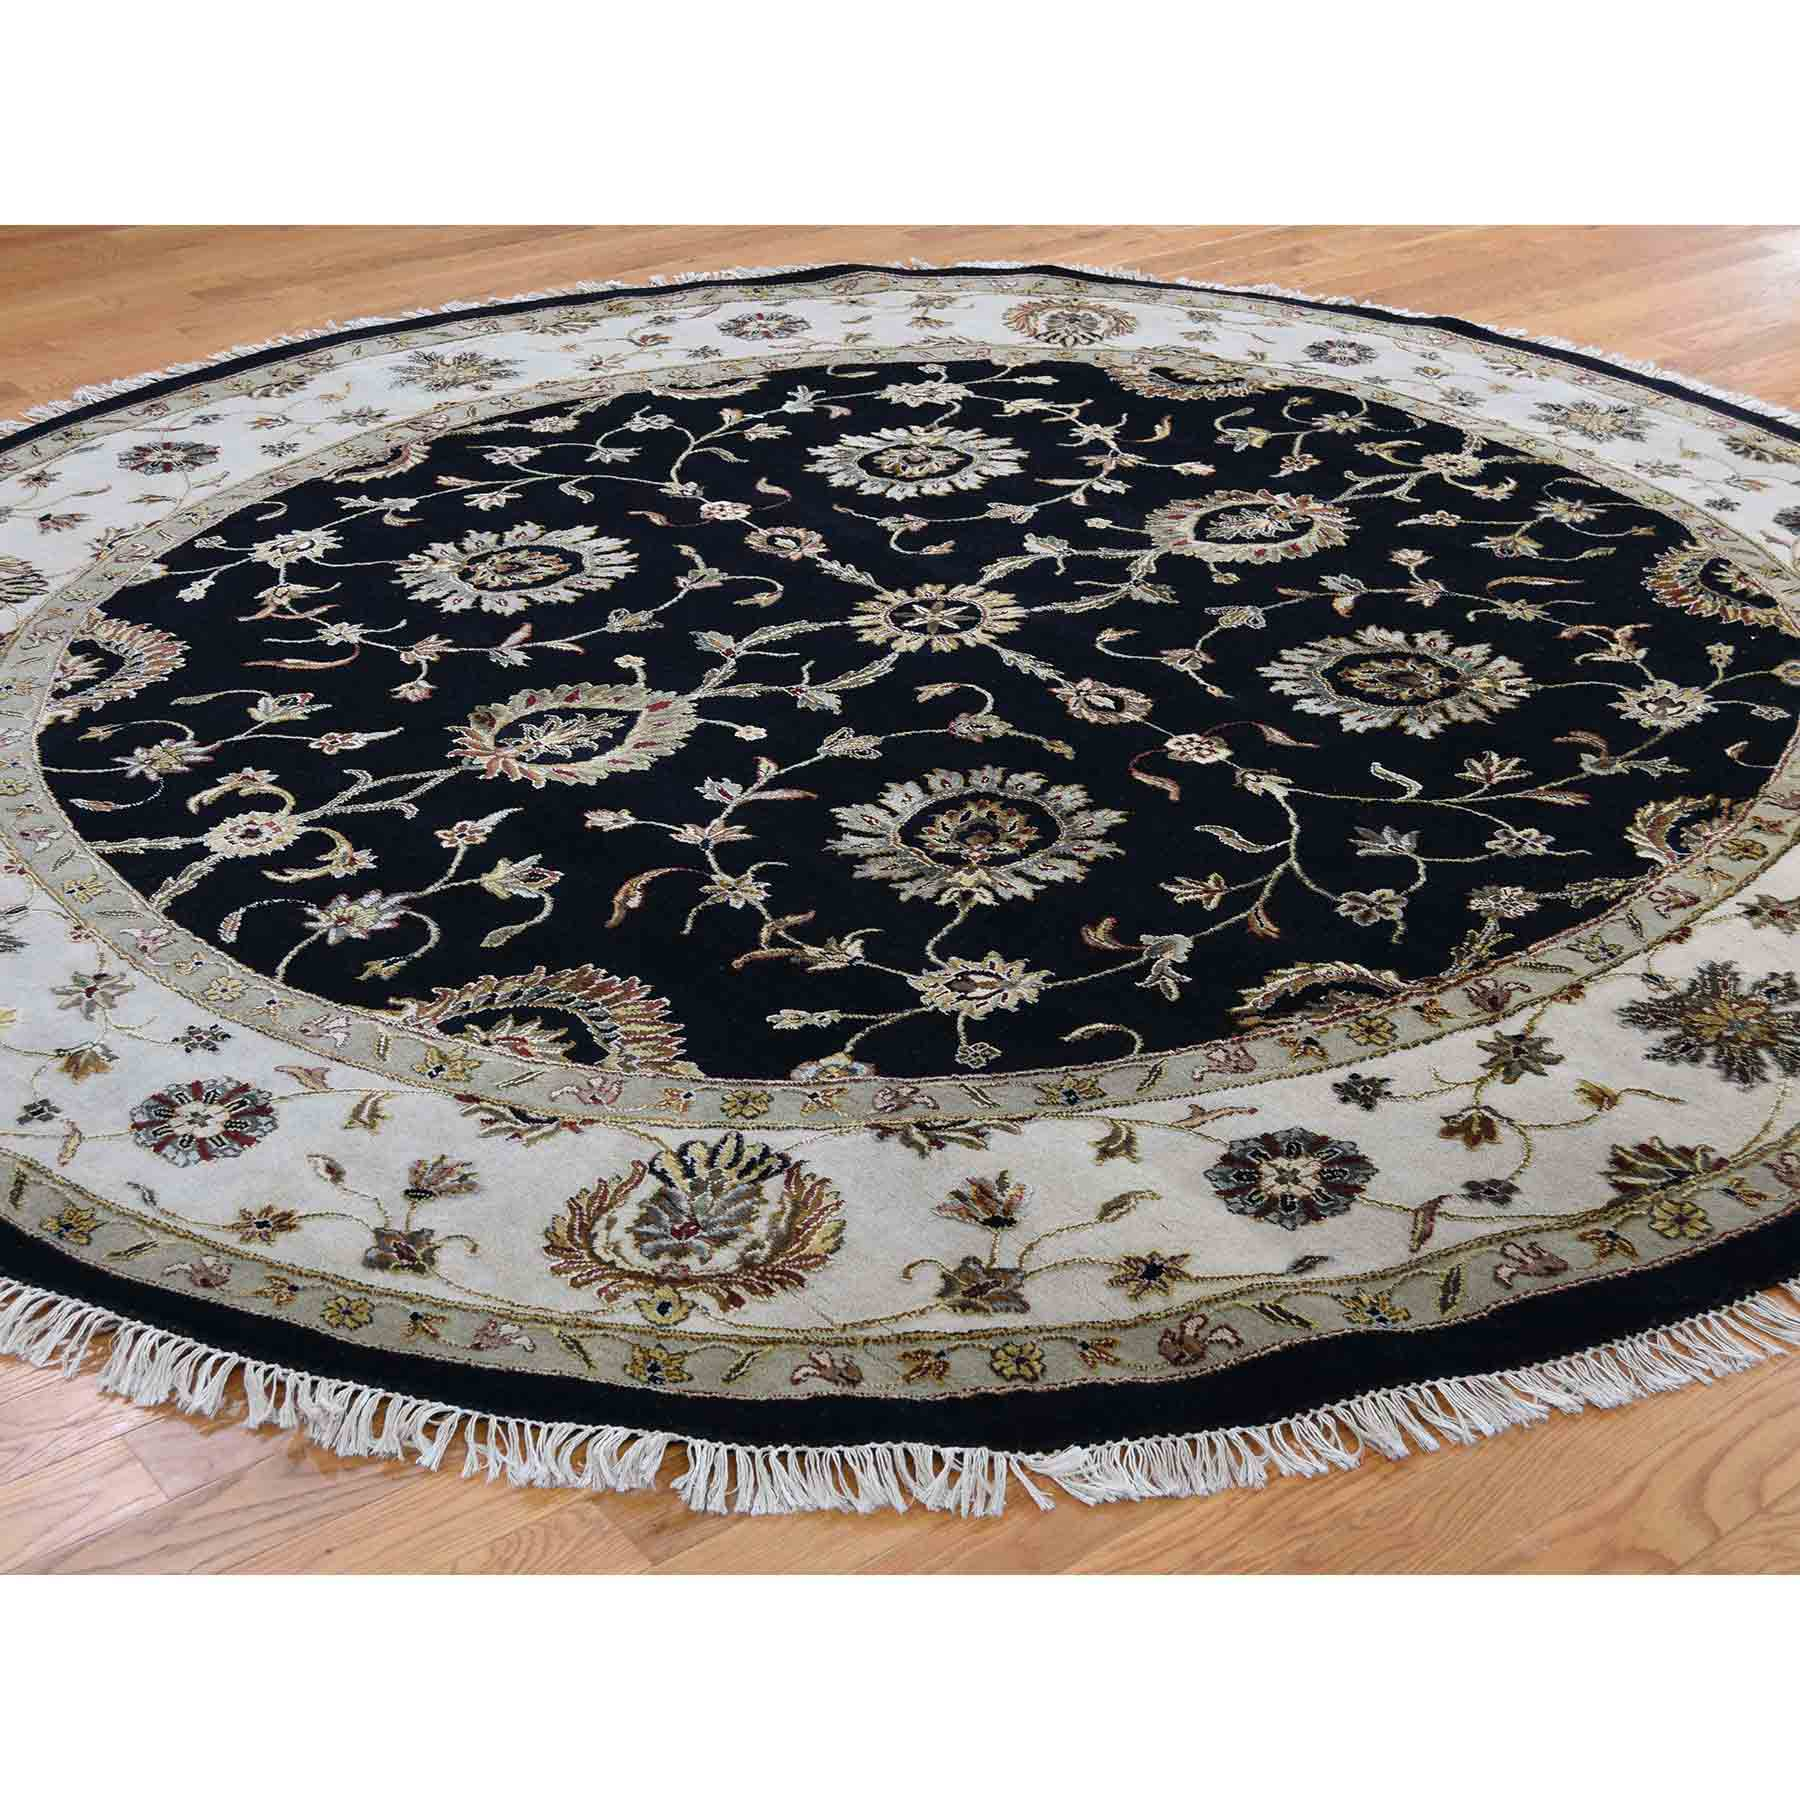 Rajasthan-Hand-Knotted-Rug-211540